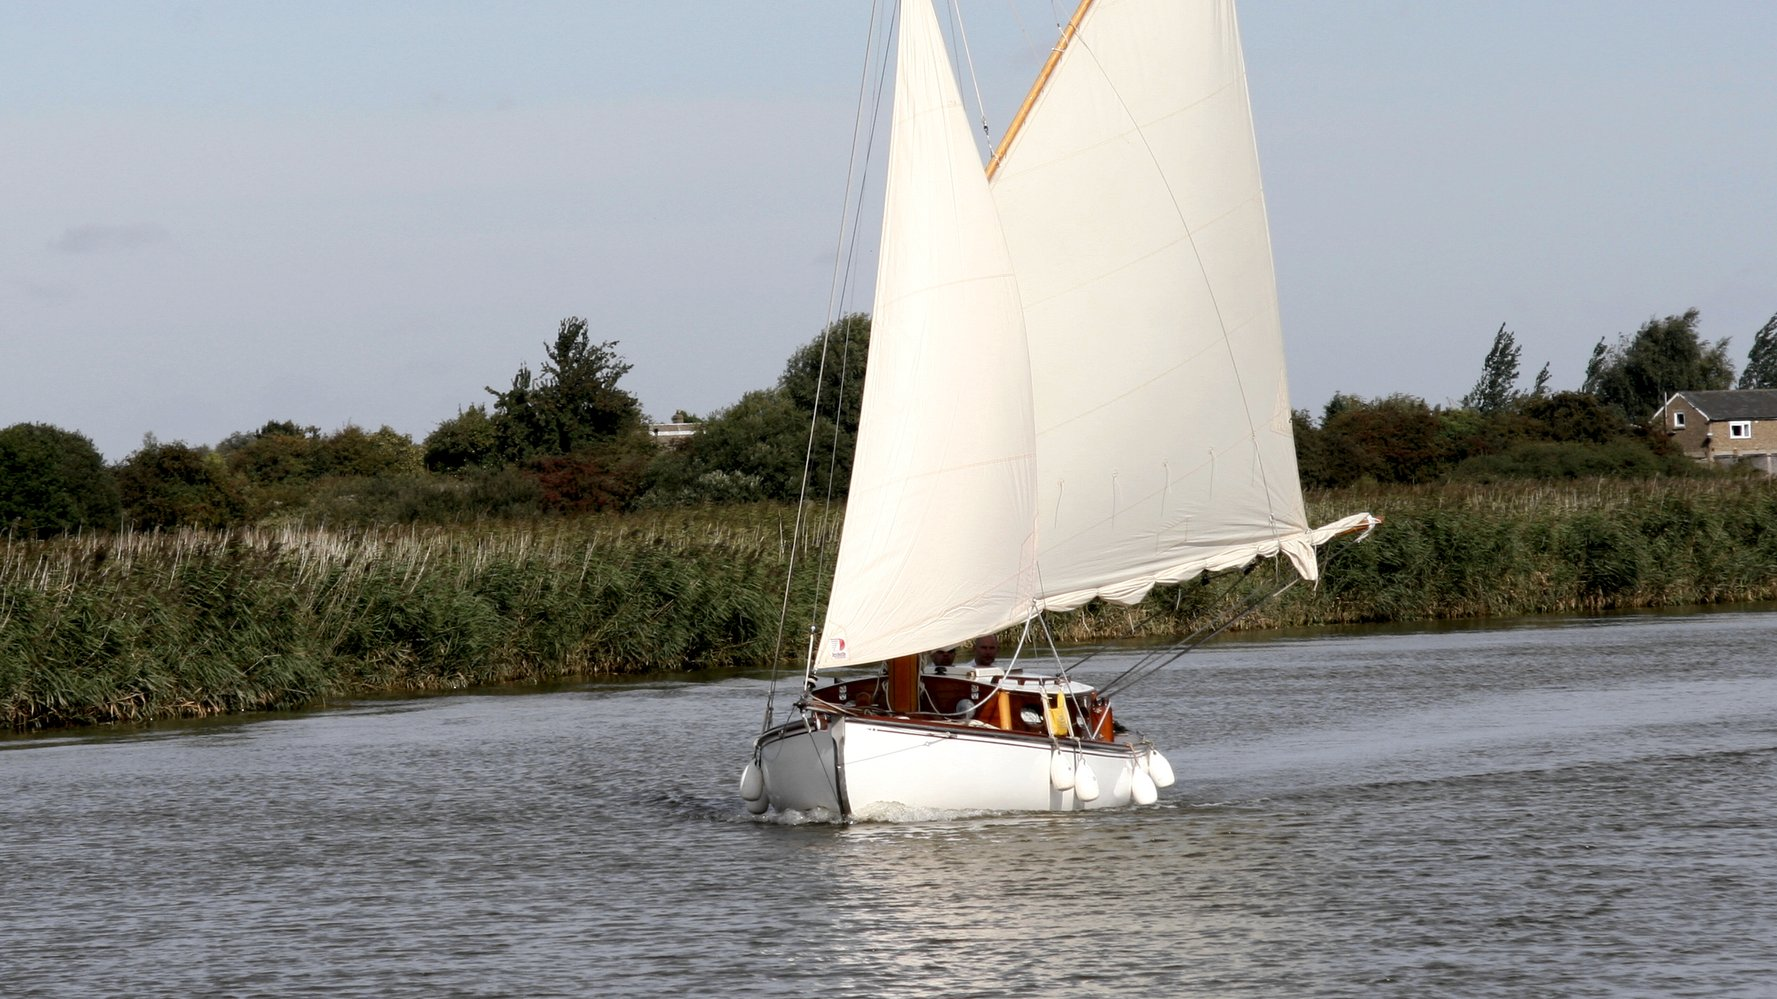 A Classic Norfolk Broads Sailing Yacht